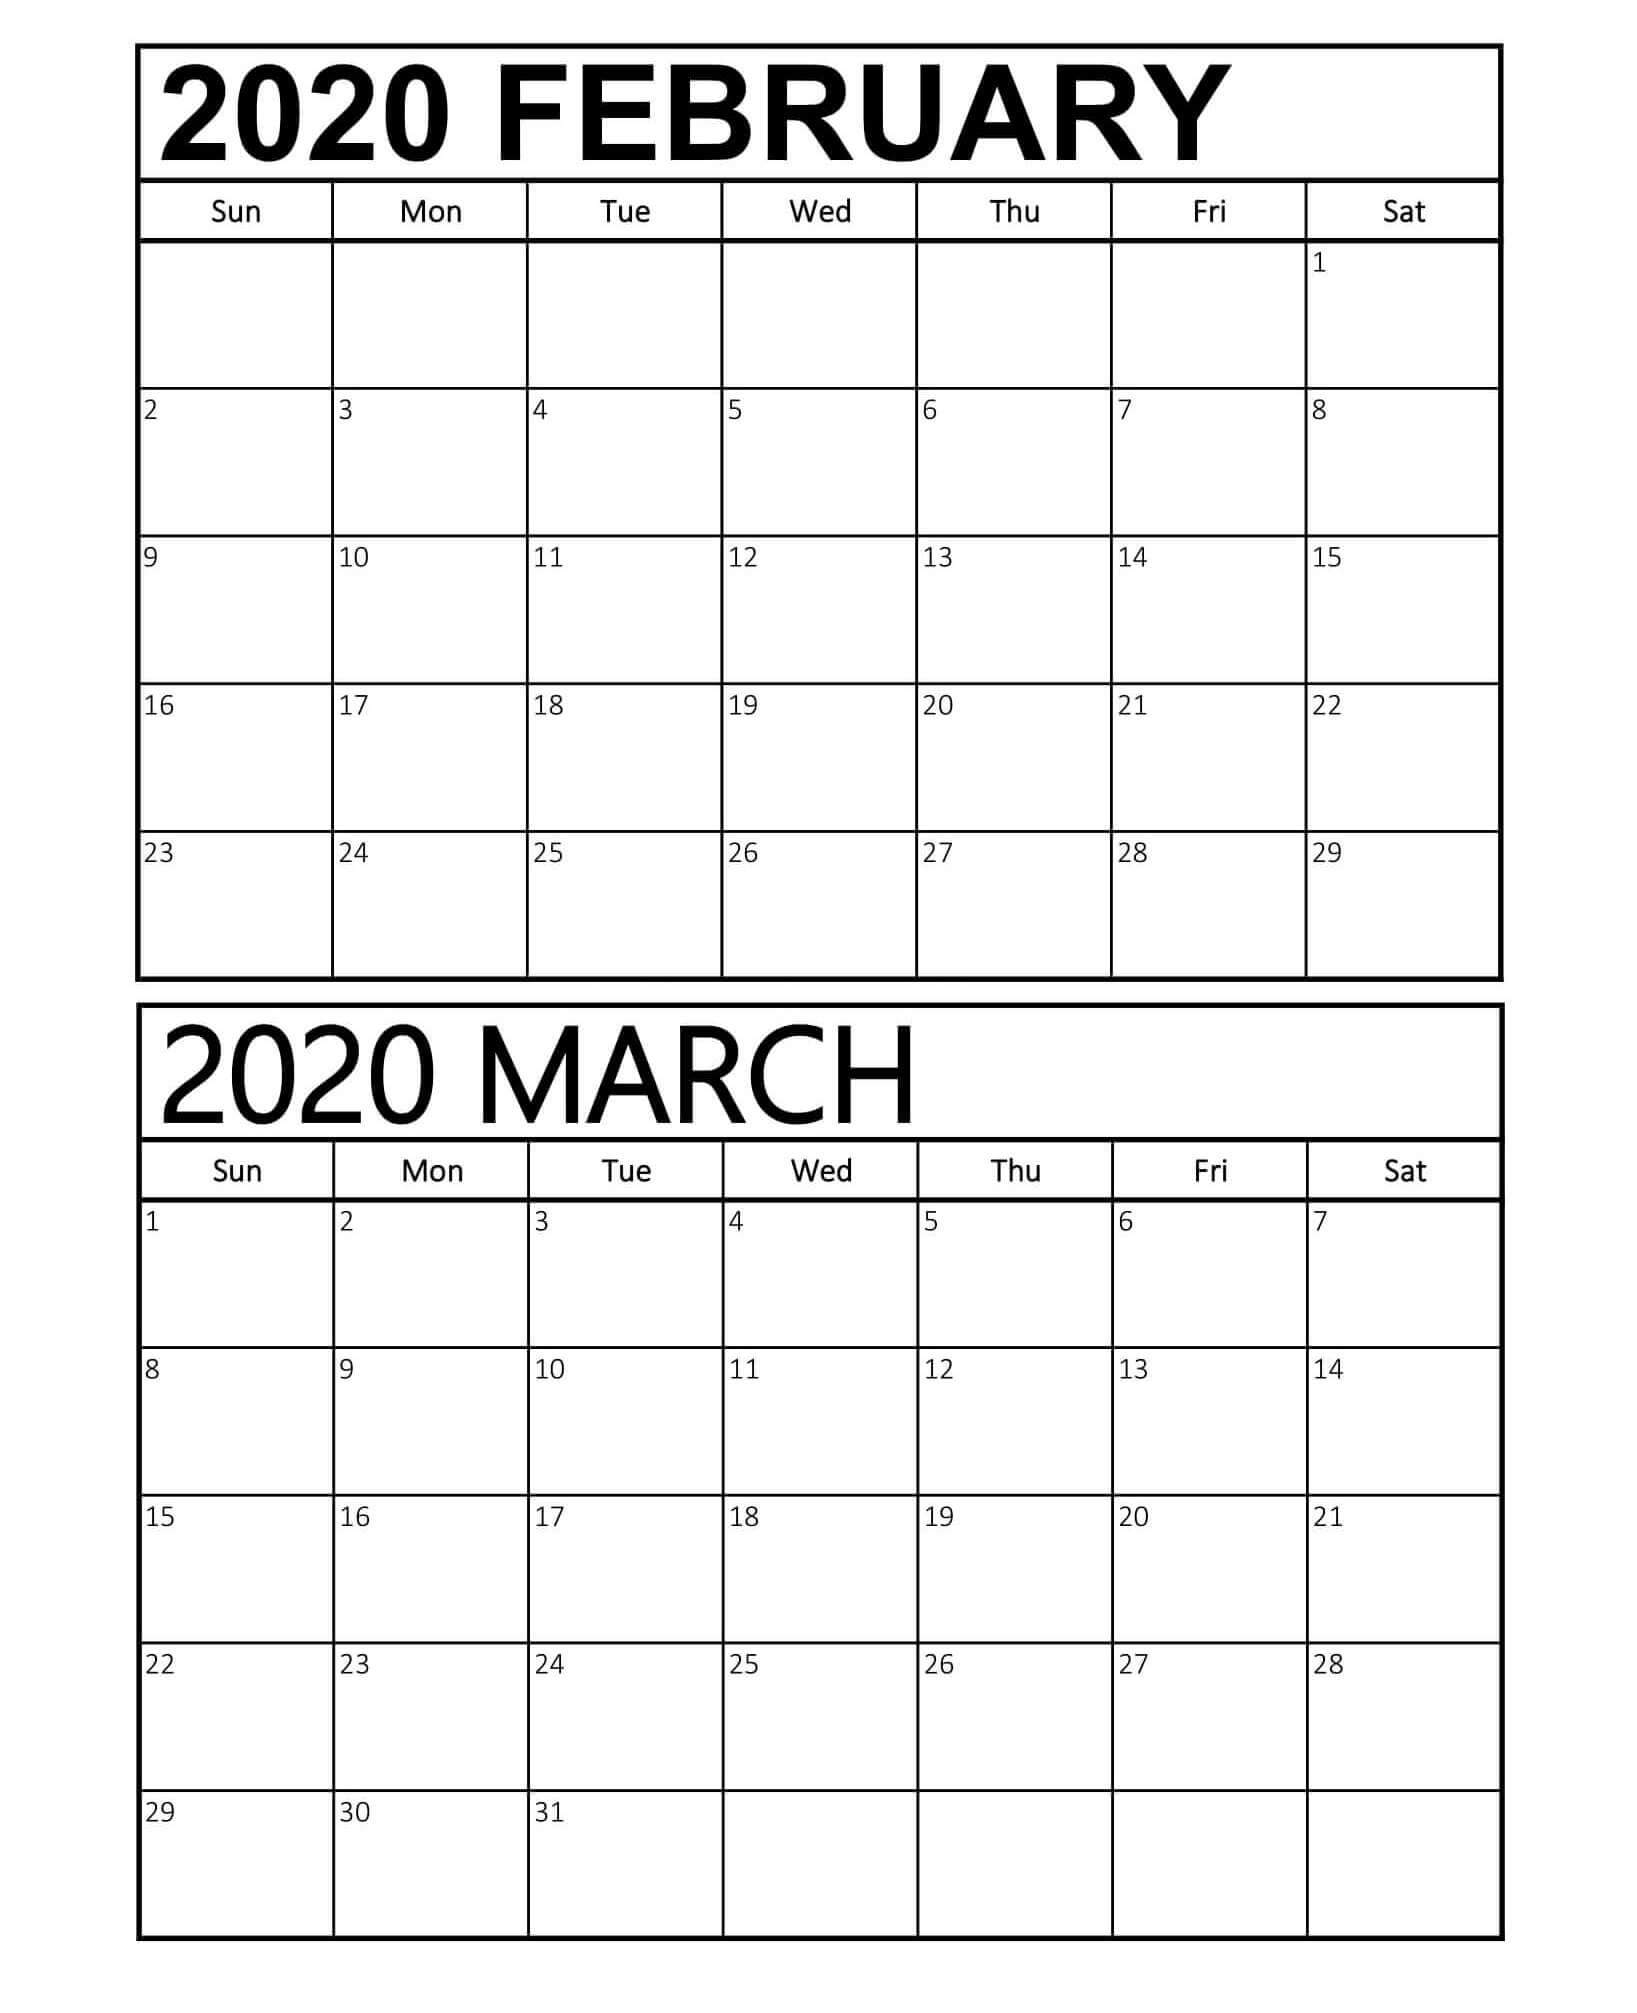 February March 2020 Calendar Pdf Template  2019 Calendars in 2020 Calendar February And March